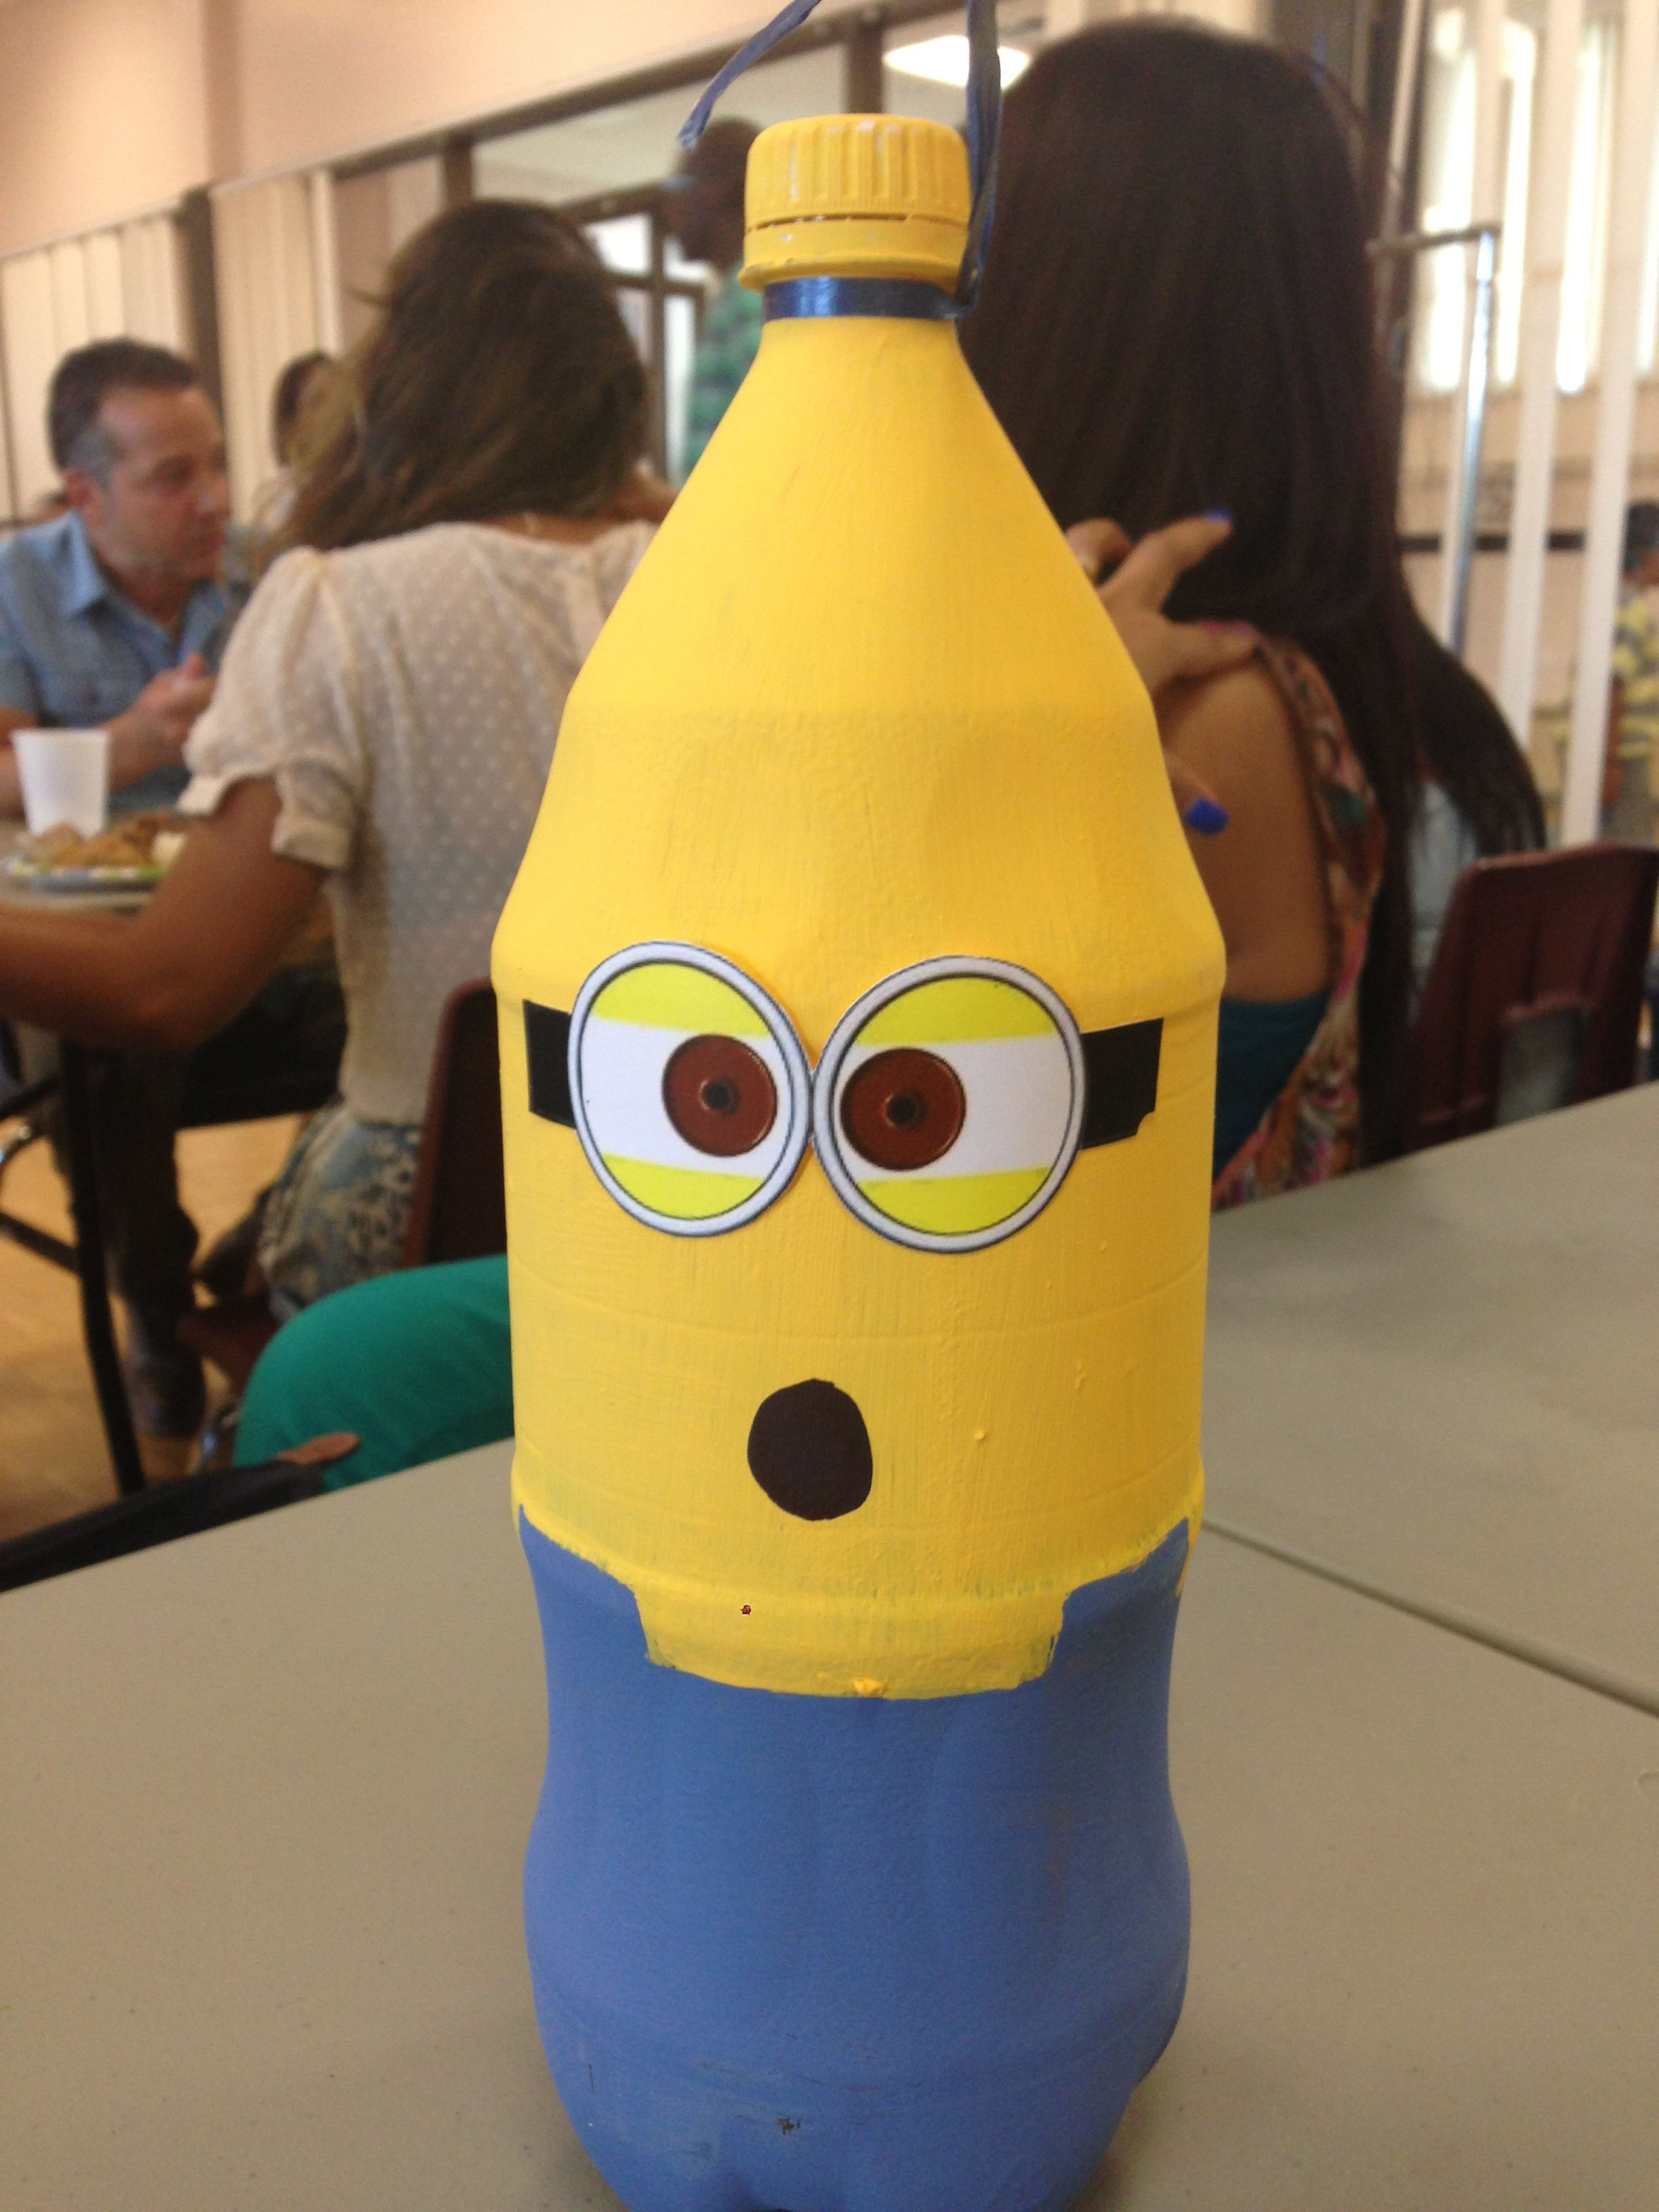 A good idea for your your bday party for despicable me theme.